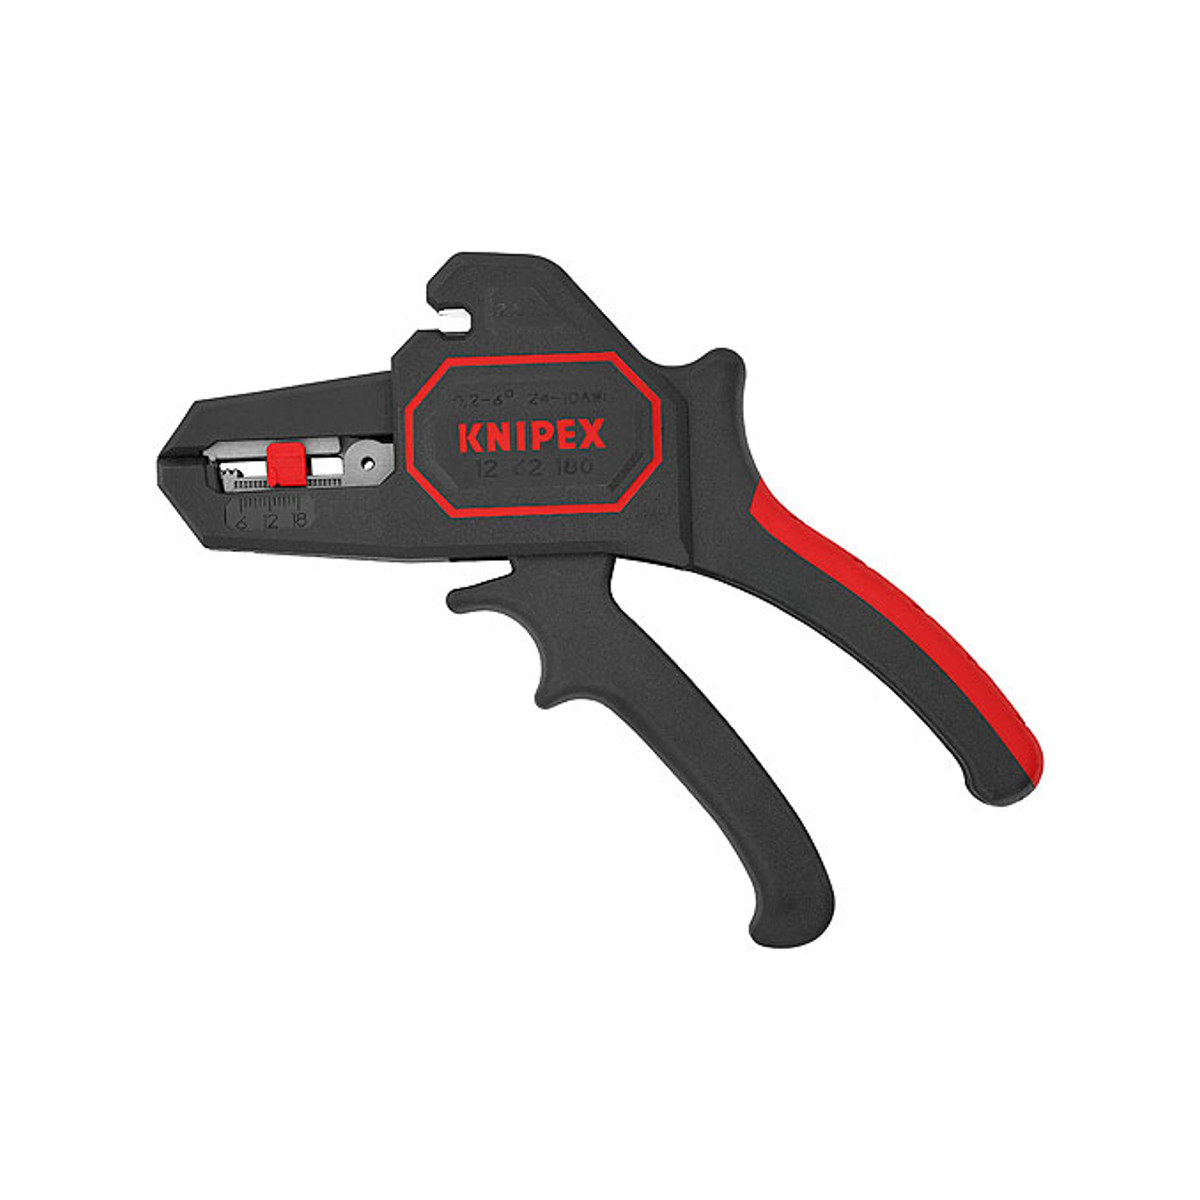 KNIPEX 12 62 180 Automatic insulation stripper, 180mm